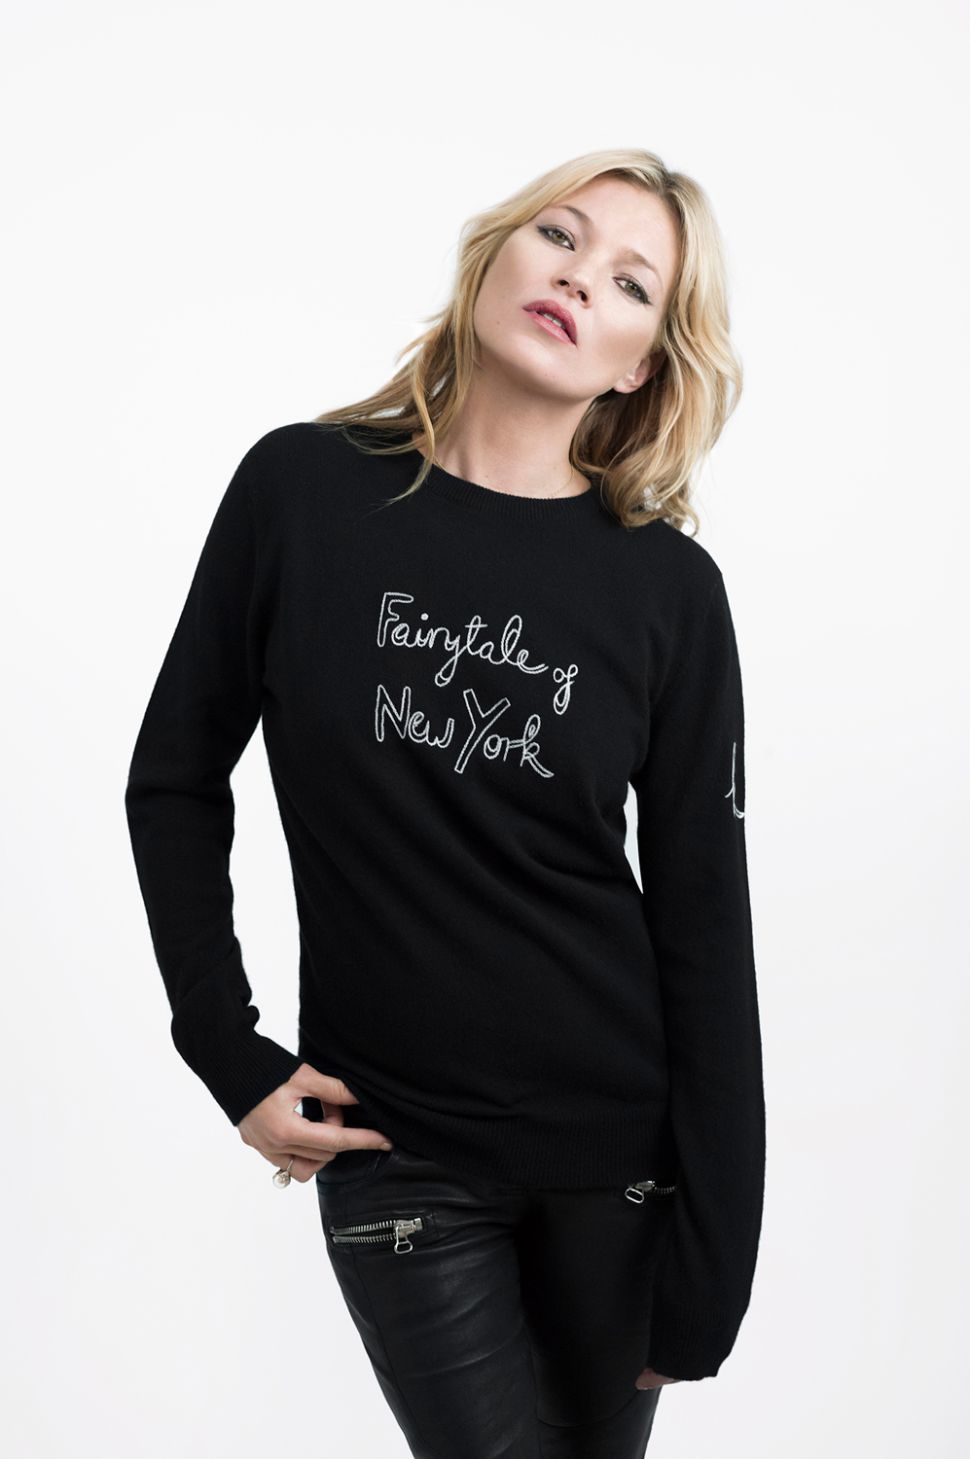 Kate Moss Models This Season's Most Charitable Christmas Sweater